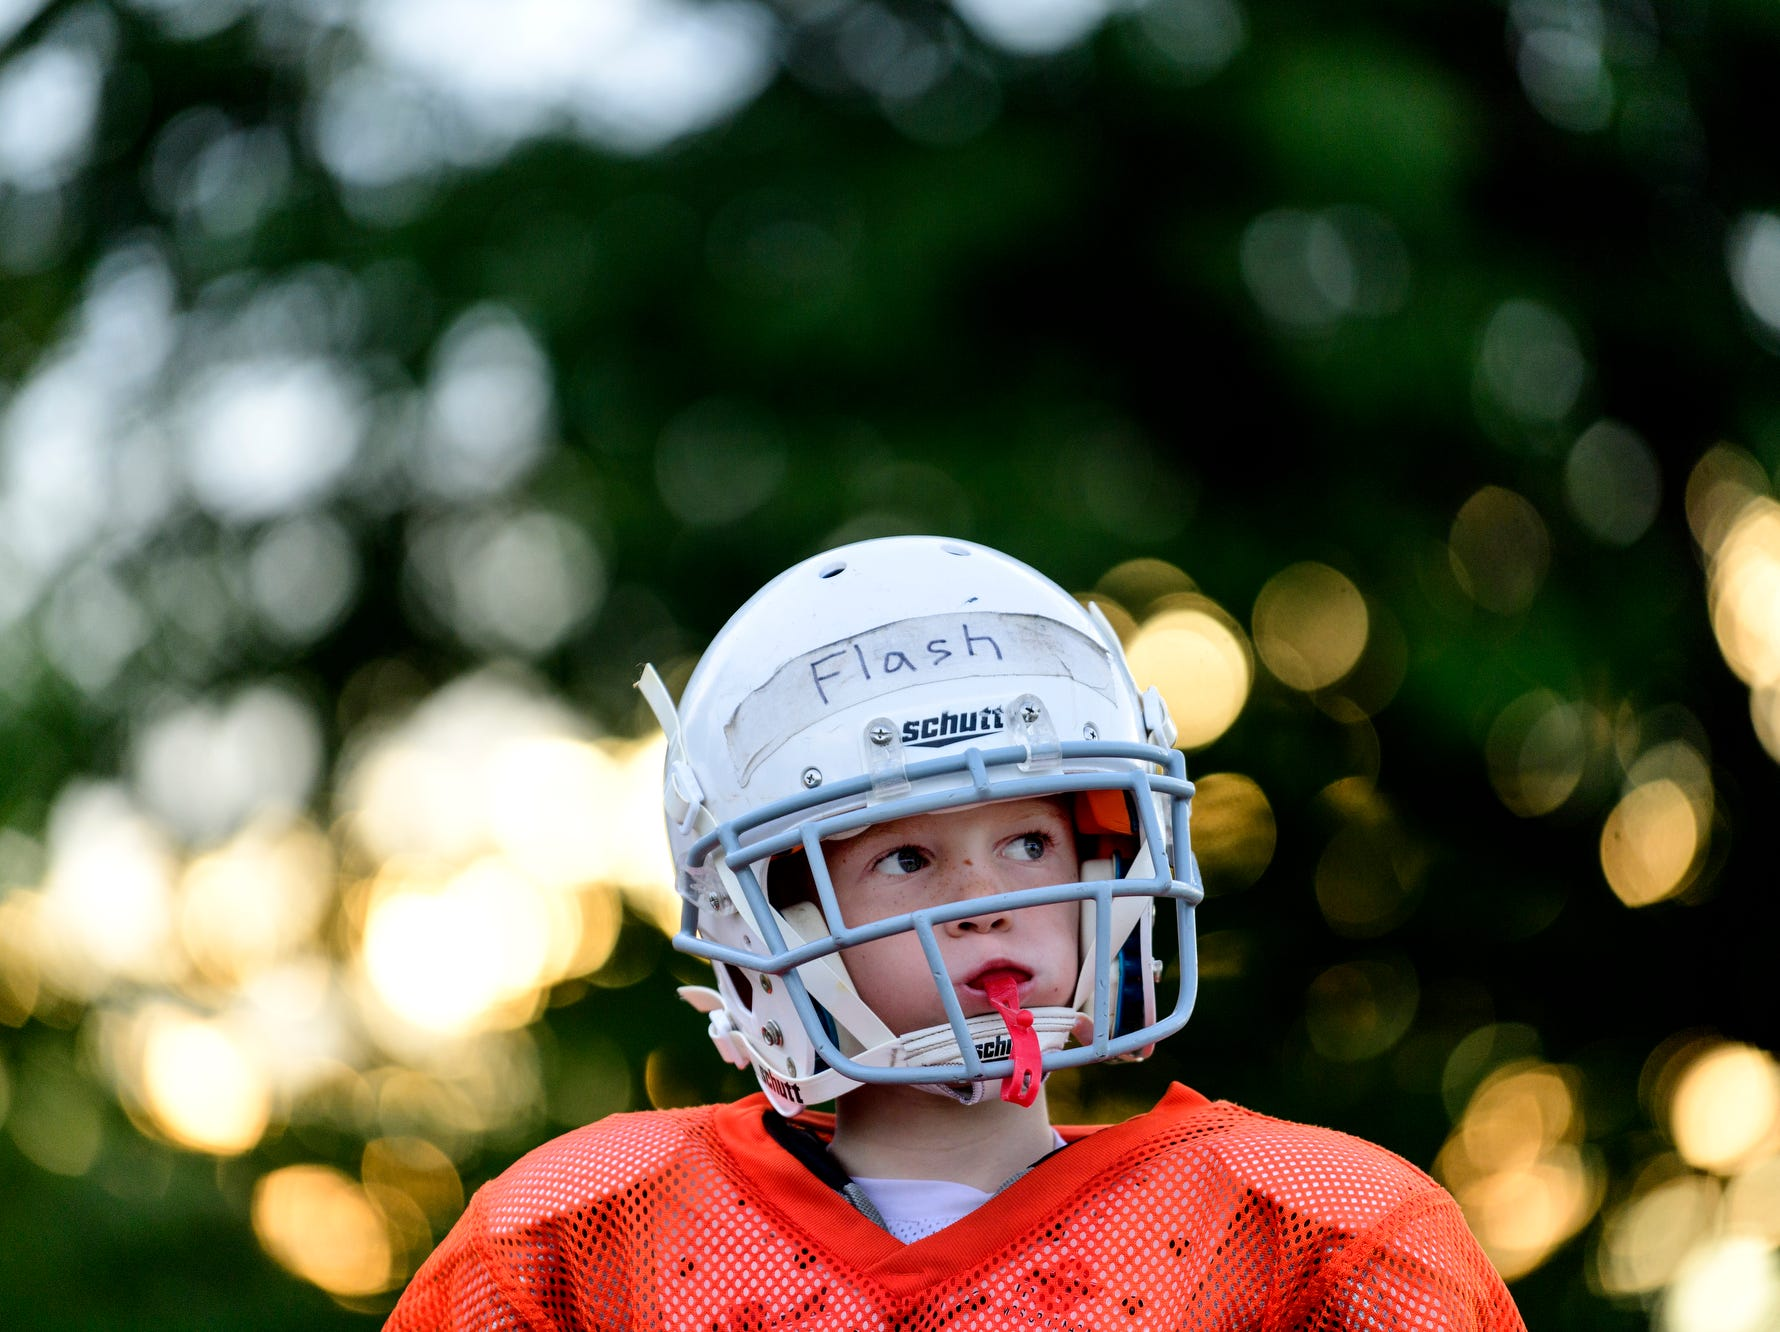 "Max ""Flash"" Boehman plays quarterback during practice with the Broncos, his Evansville Junior League Football team, at Howell Park in Evansville, Ind., Tuesday evening, Sept. 11, 2018."